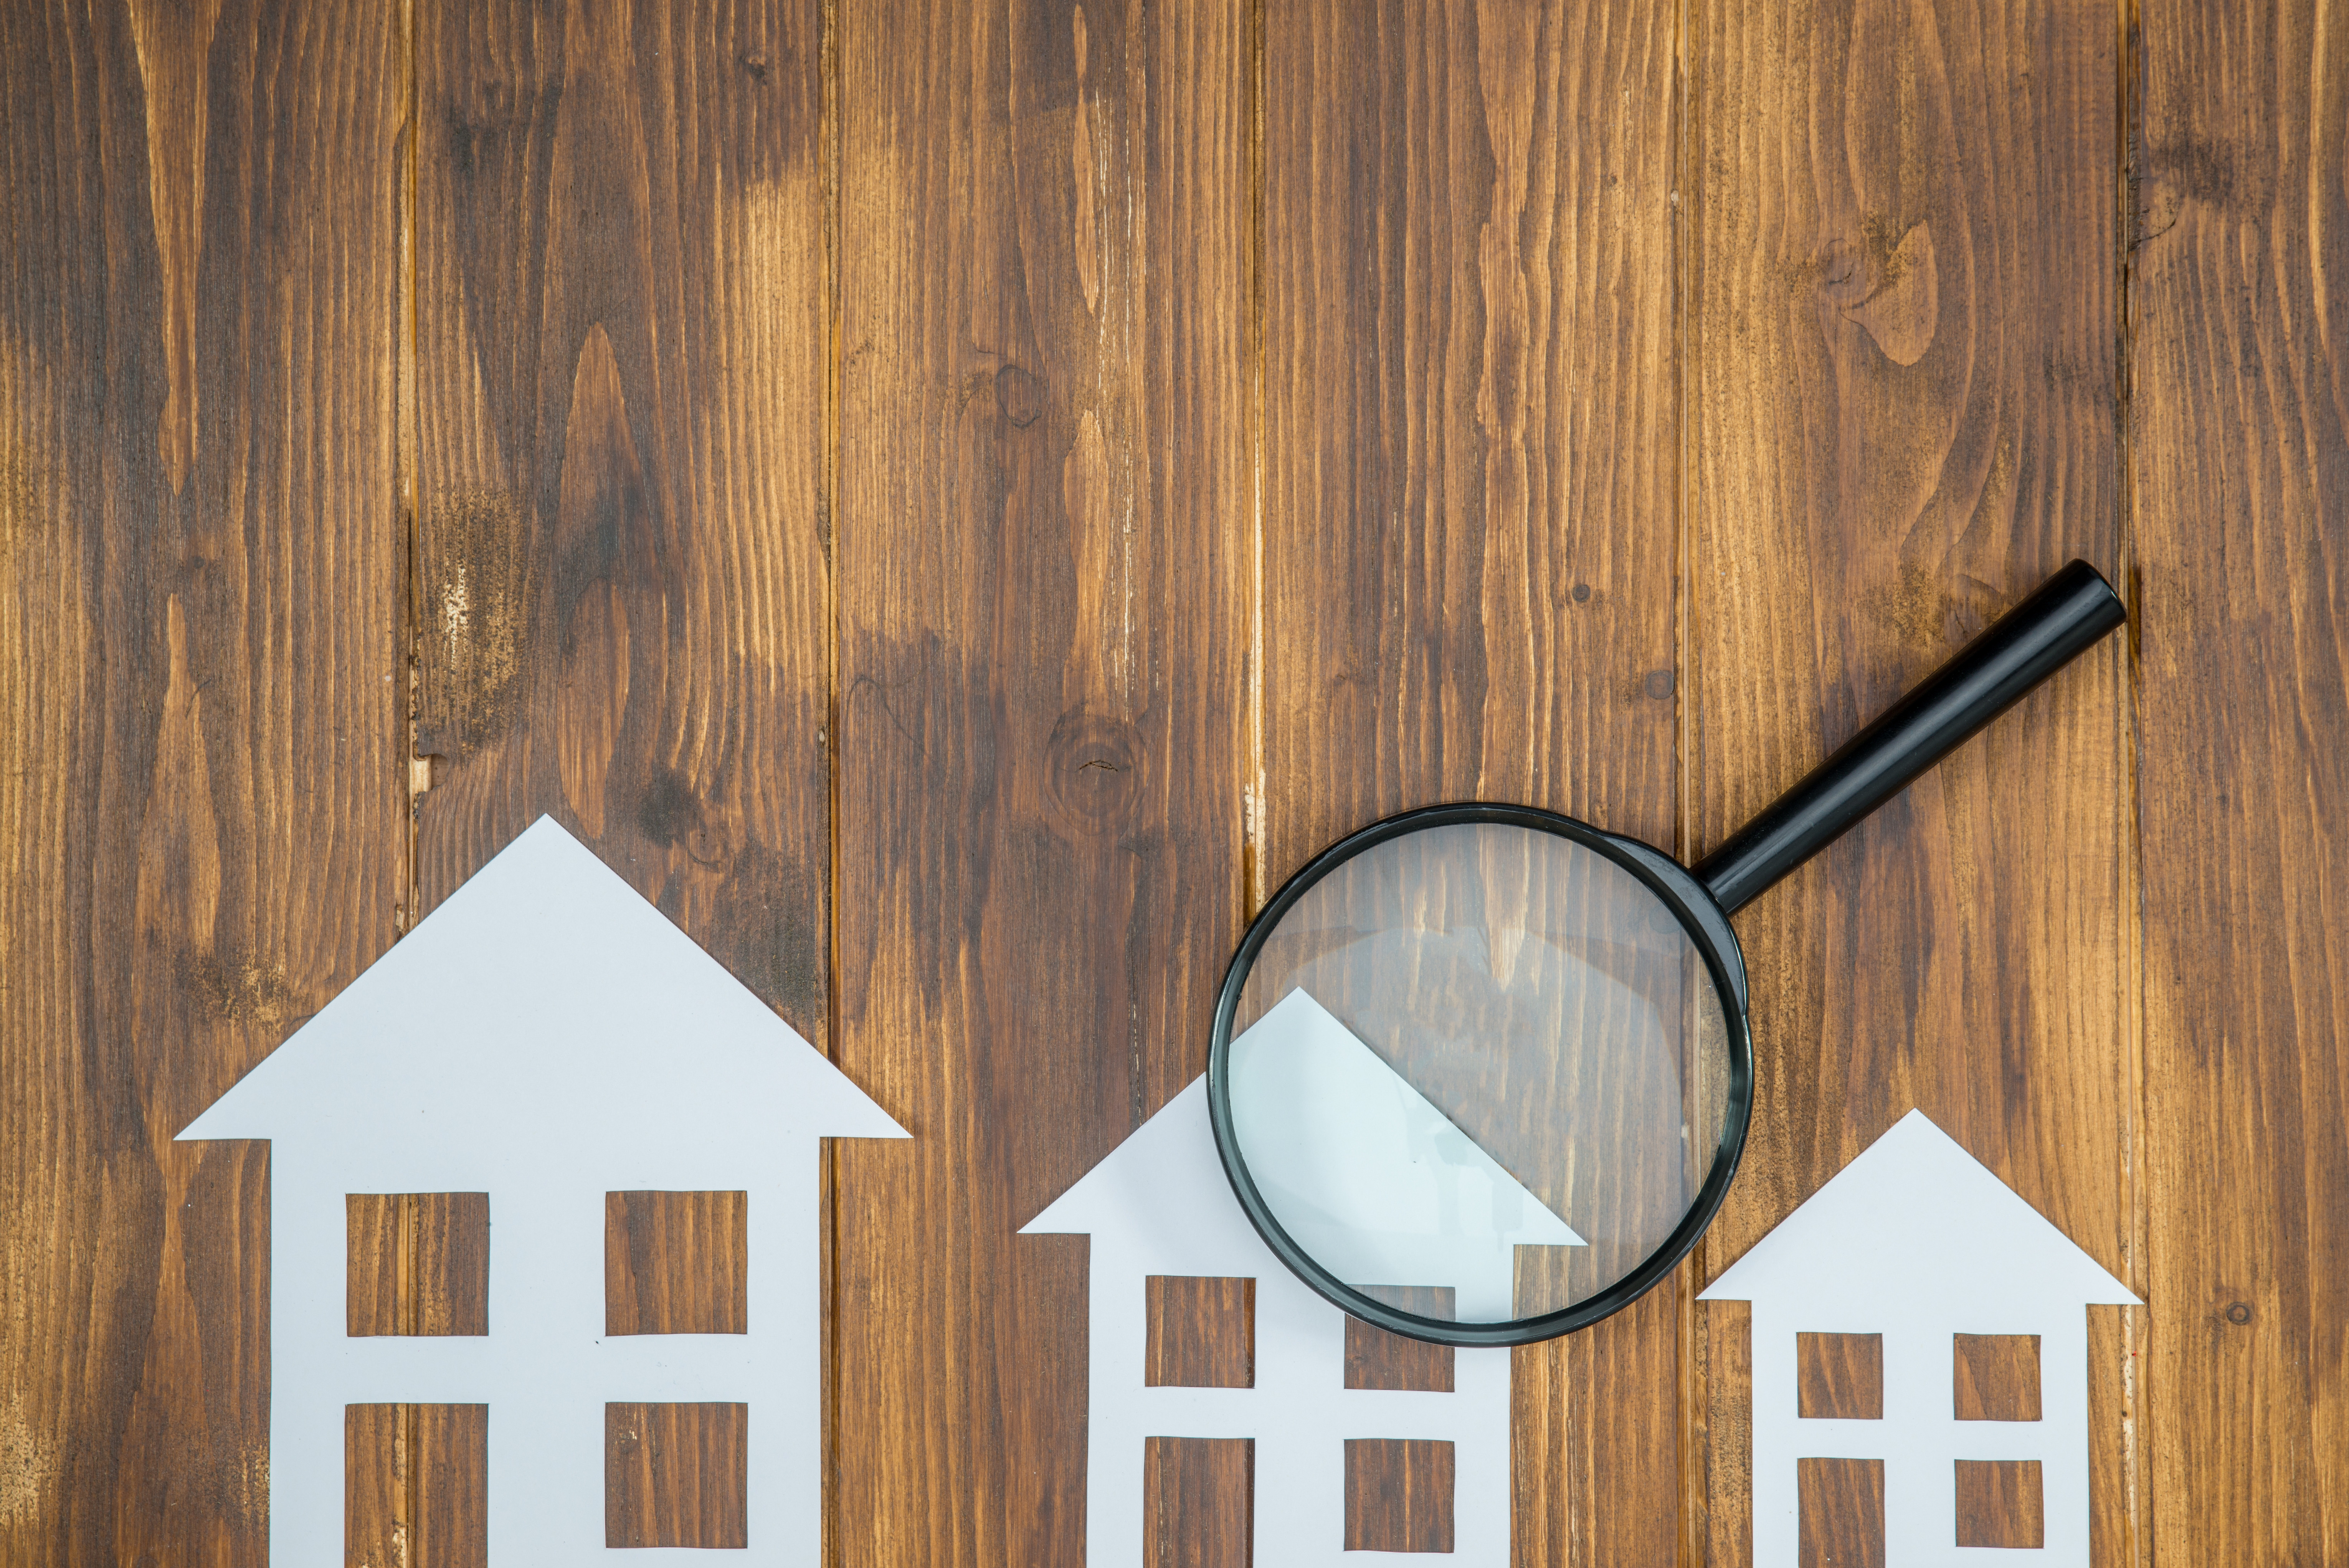 Home Maintenance Inspections